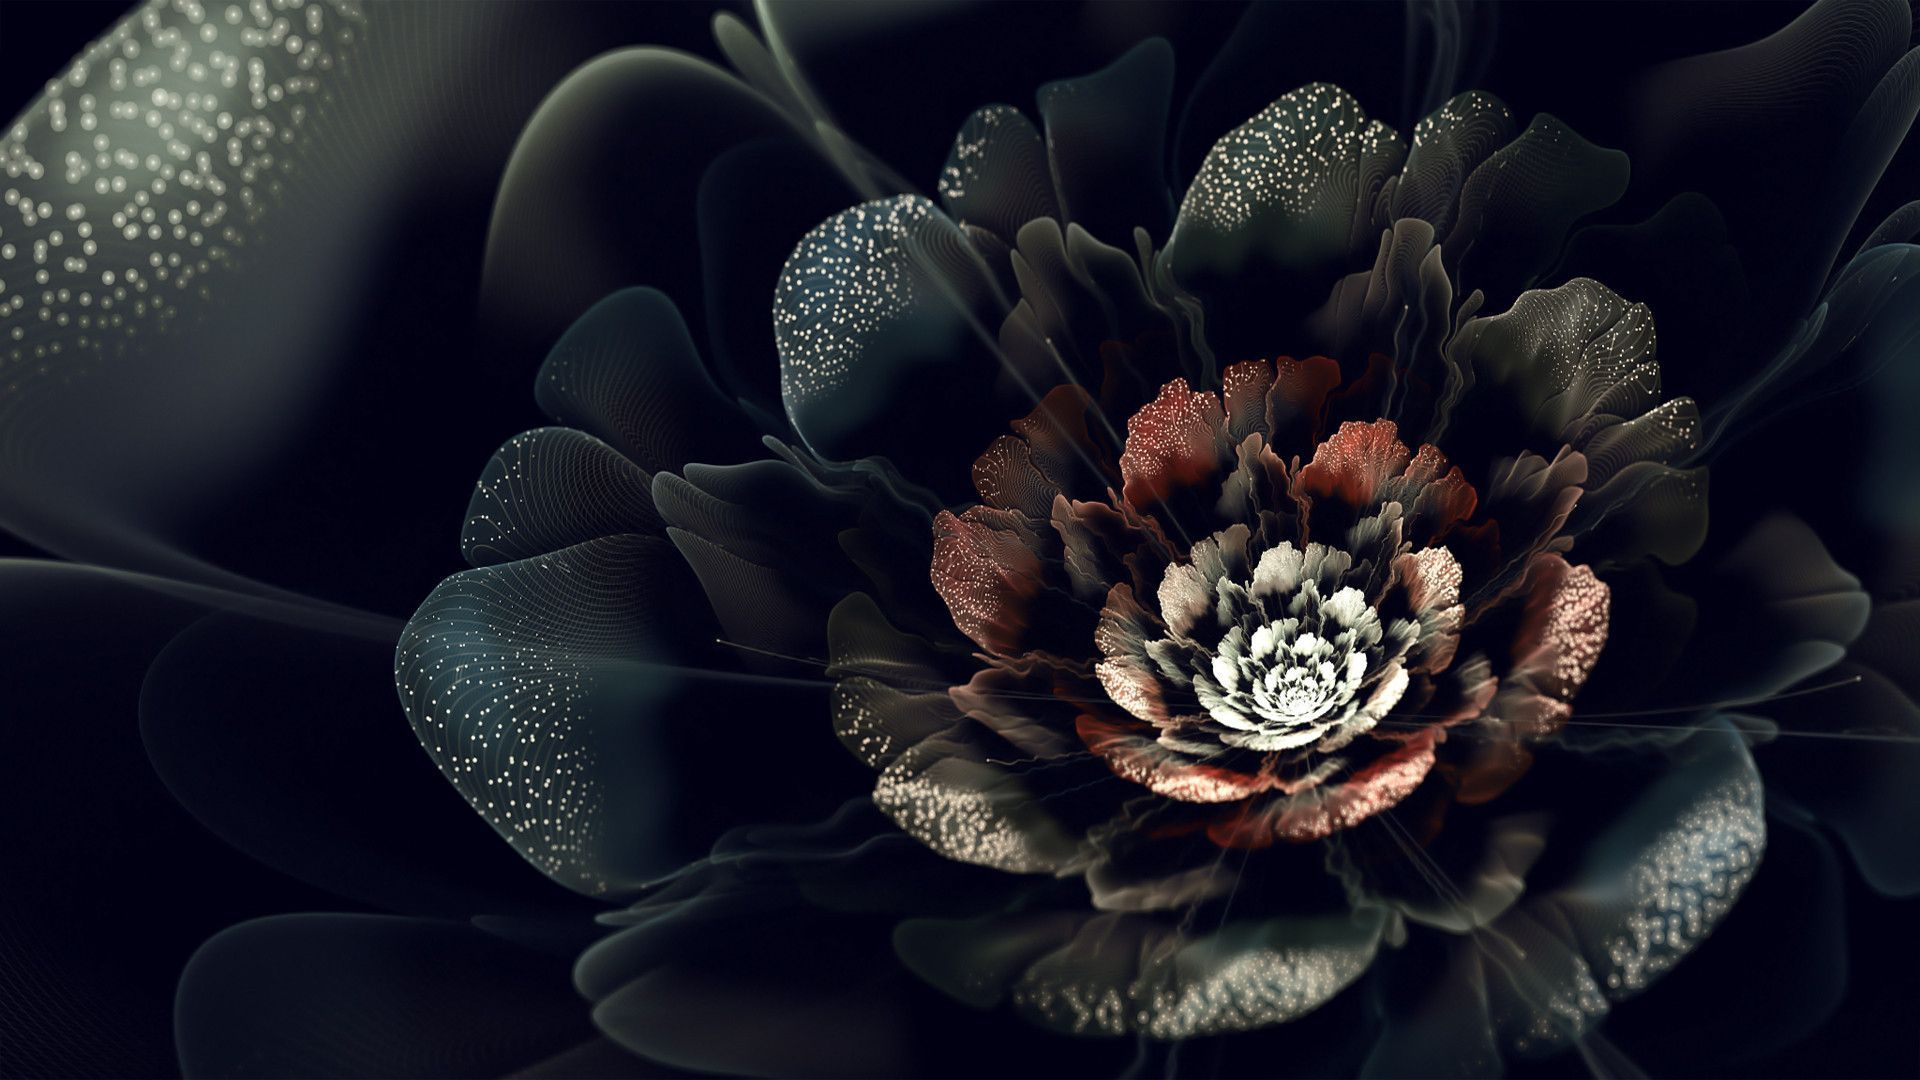 Black Flowers Hd Wallpapers Top Free Black Flowers Hd